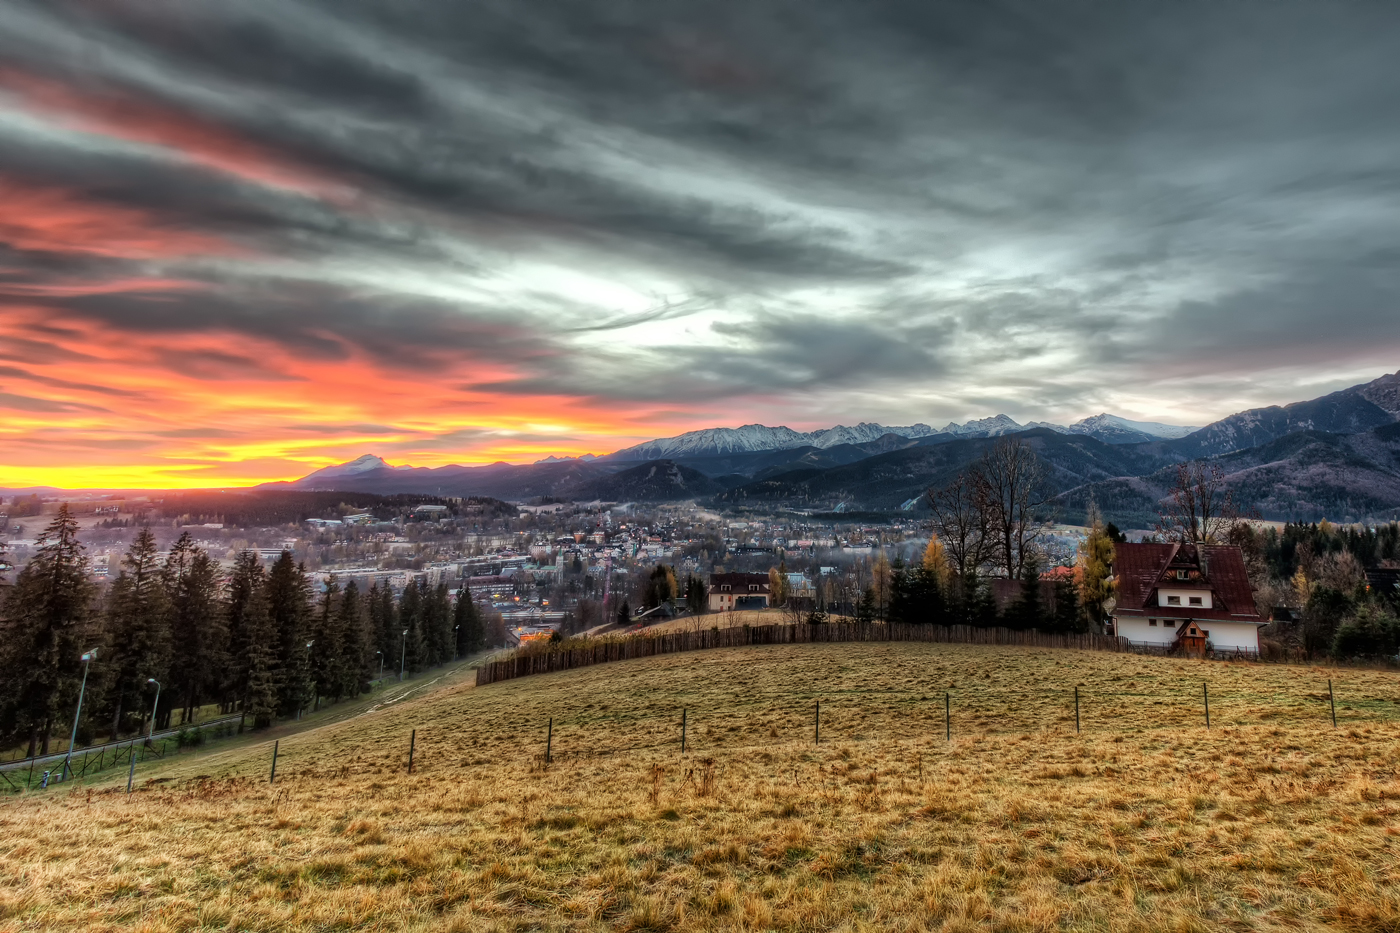 Sunrise at Tatra Mountains in Zakopane